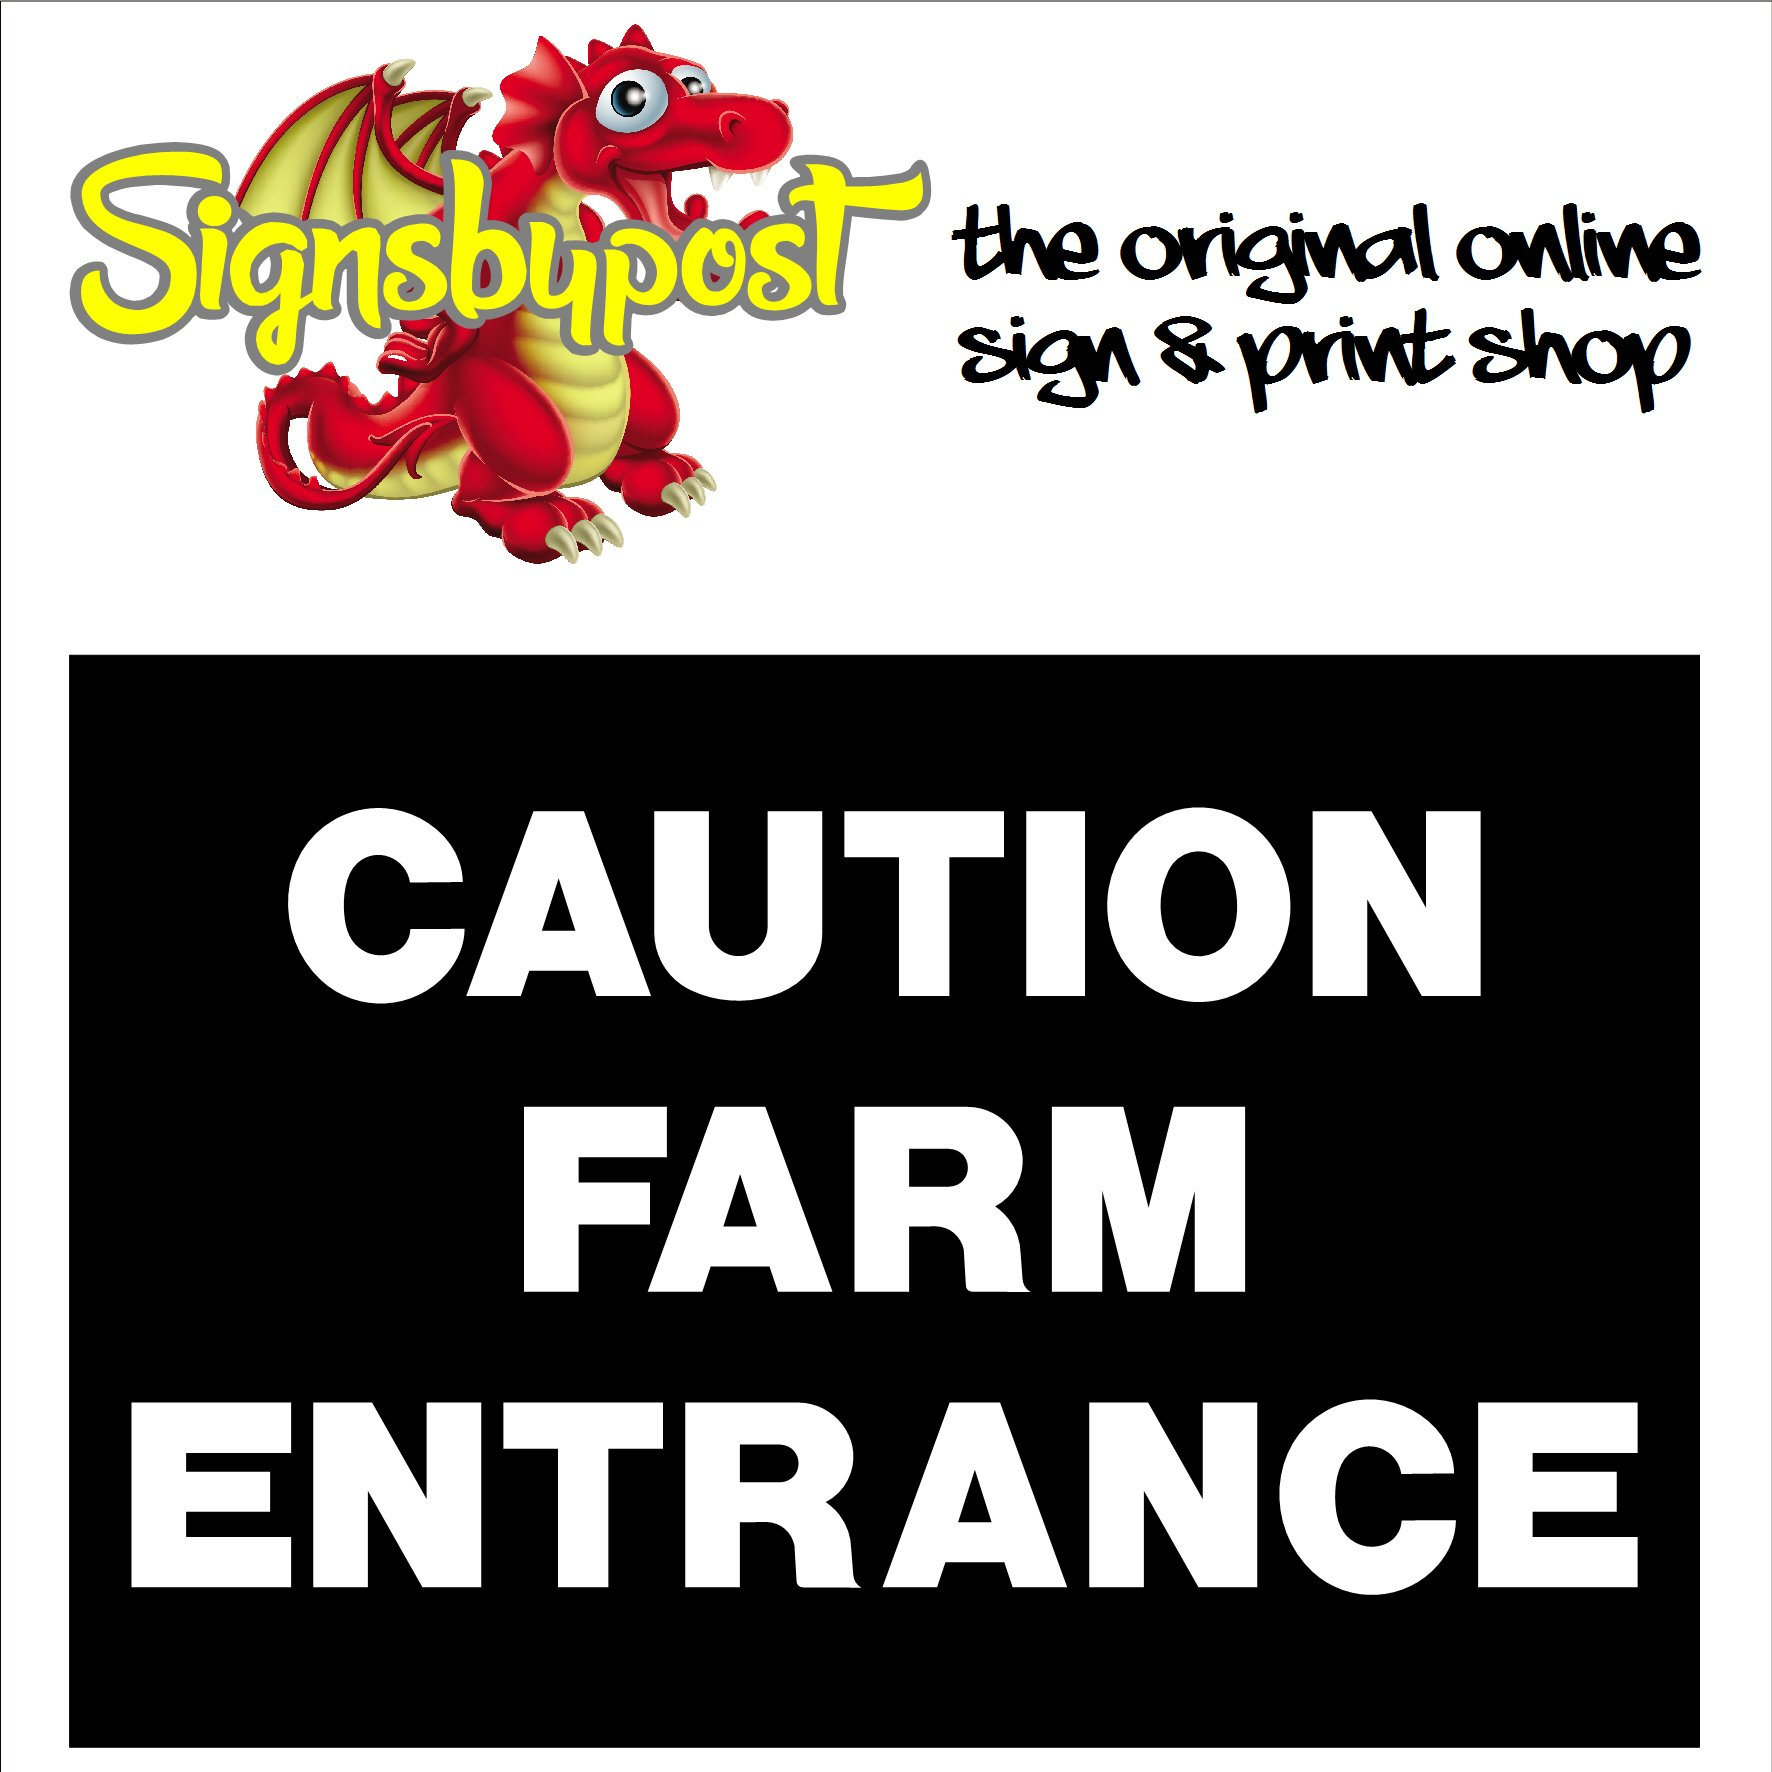 Caution farm entrance sign 9011 – Signs by Post